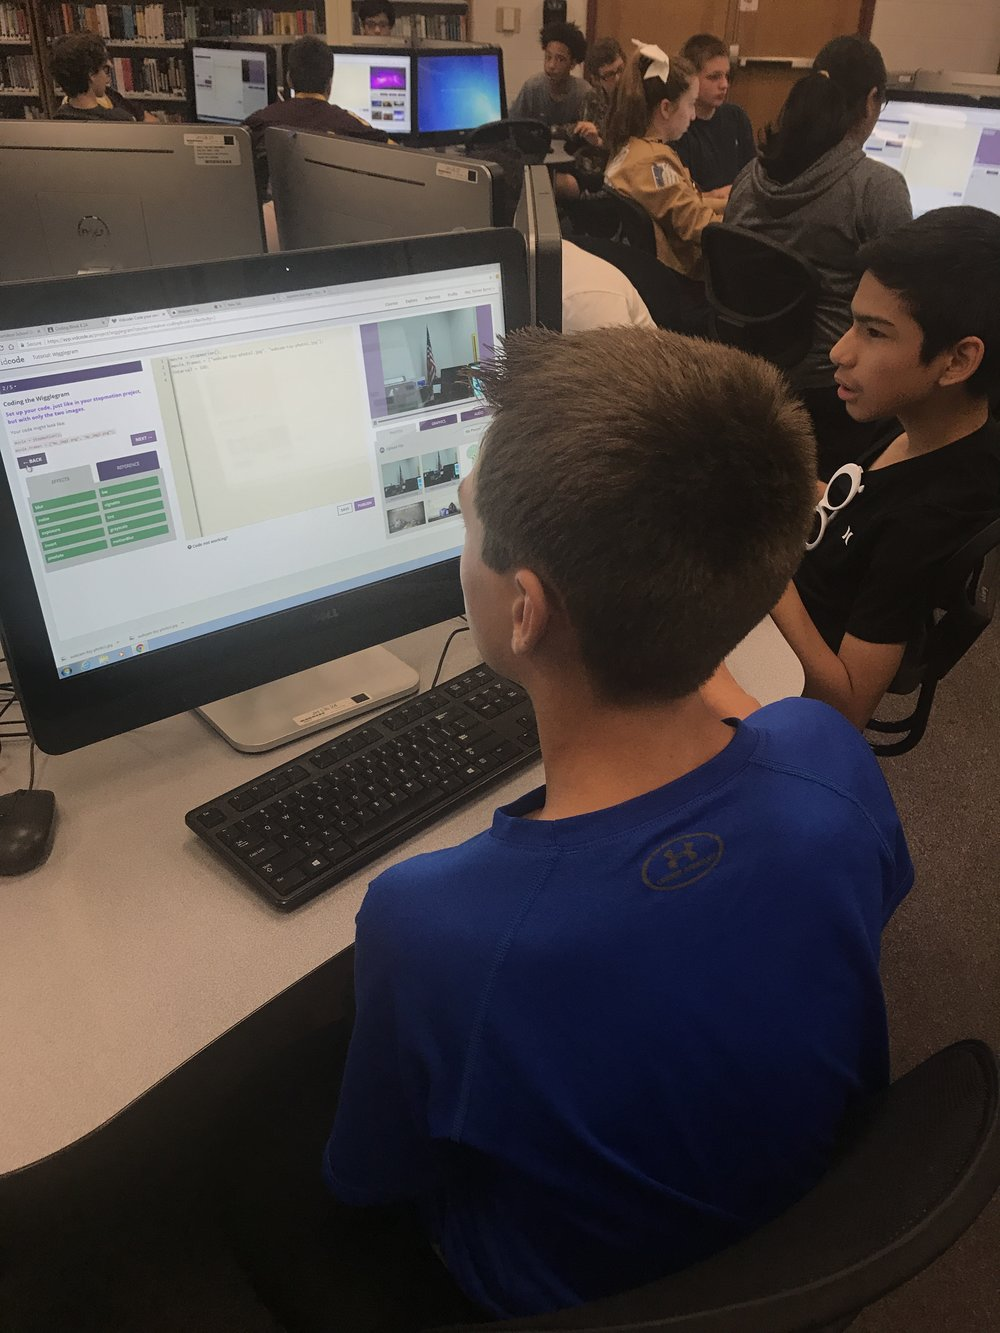 I feel my successes are often and many! The fact that I'm able to expose so many students to coding in an inviting and interesting environment is a great accomplishment.